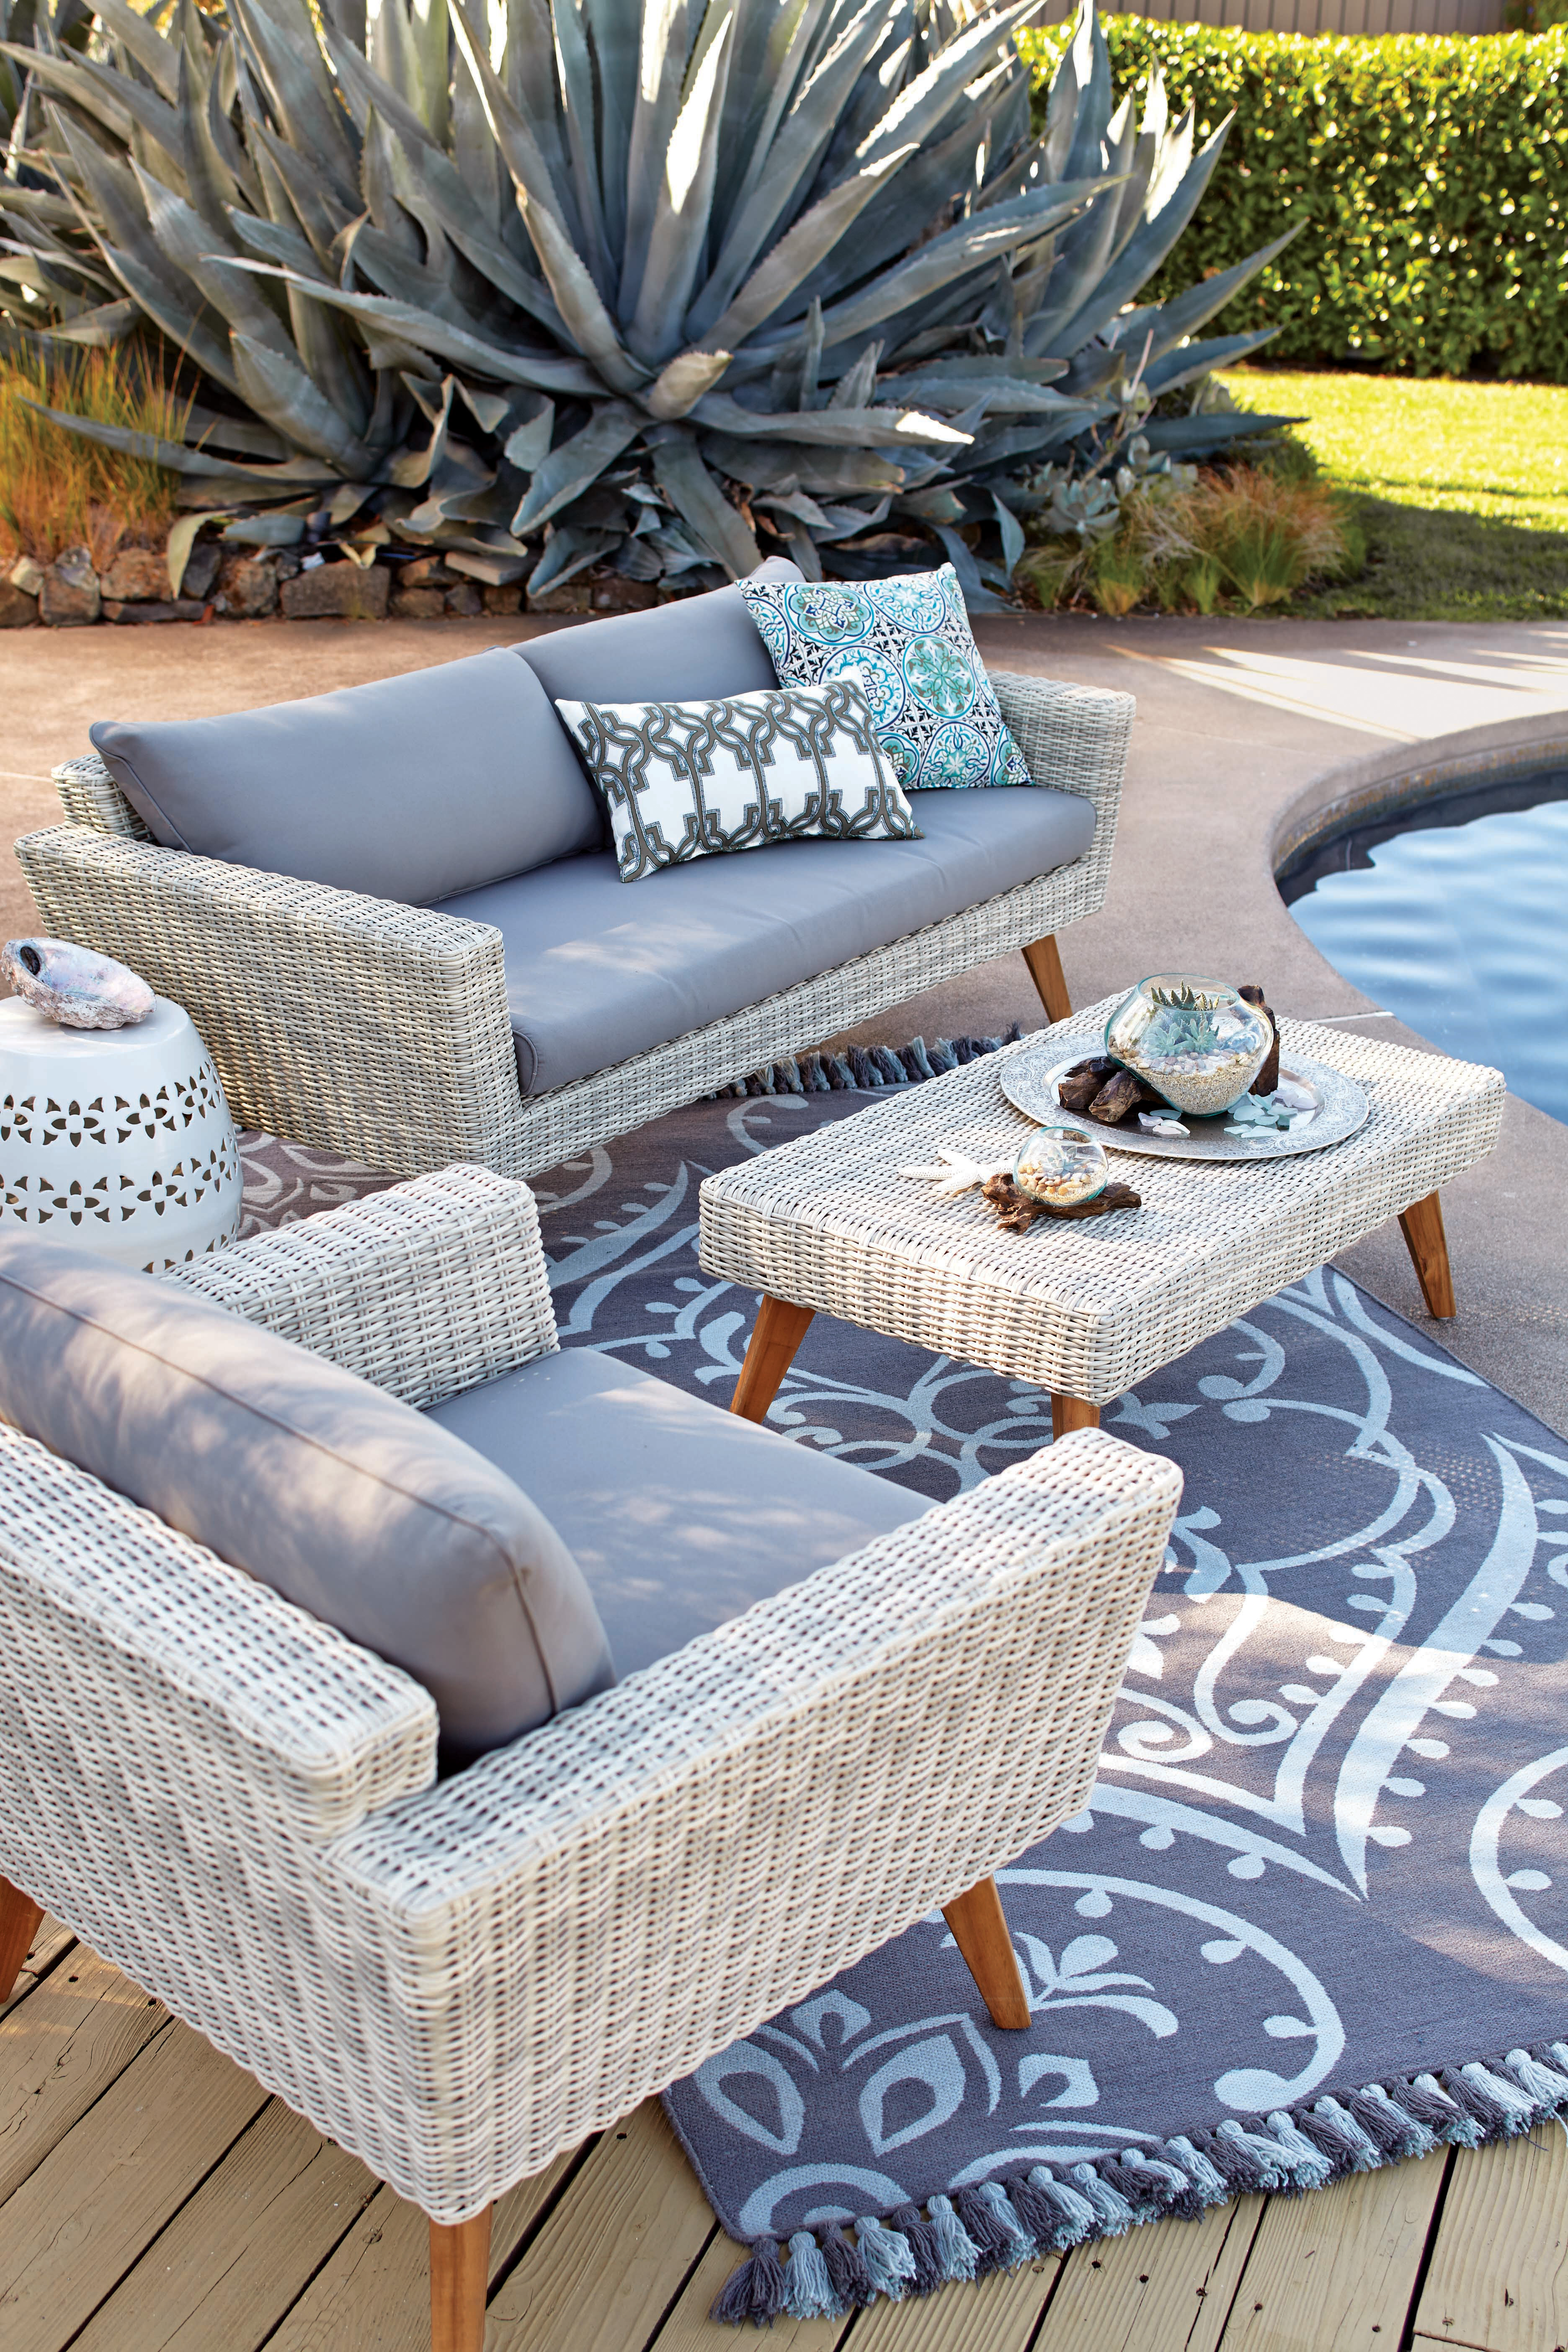 Incroyable Cost Plus World Market Makes Outdoor Entertaining Easy And Affordable |  Business Wire